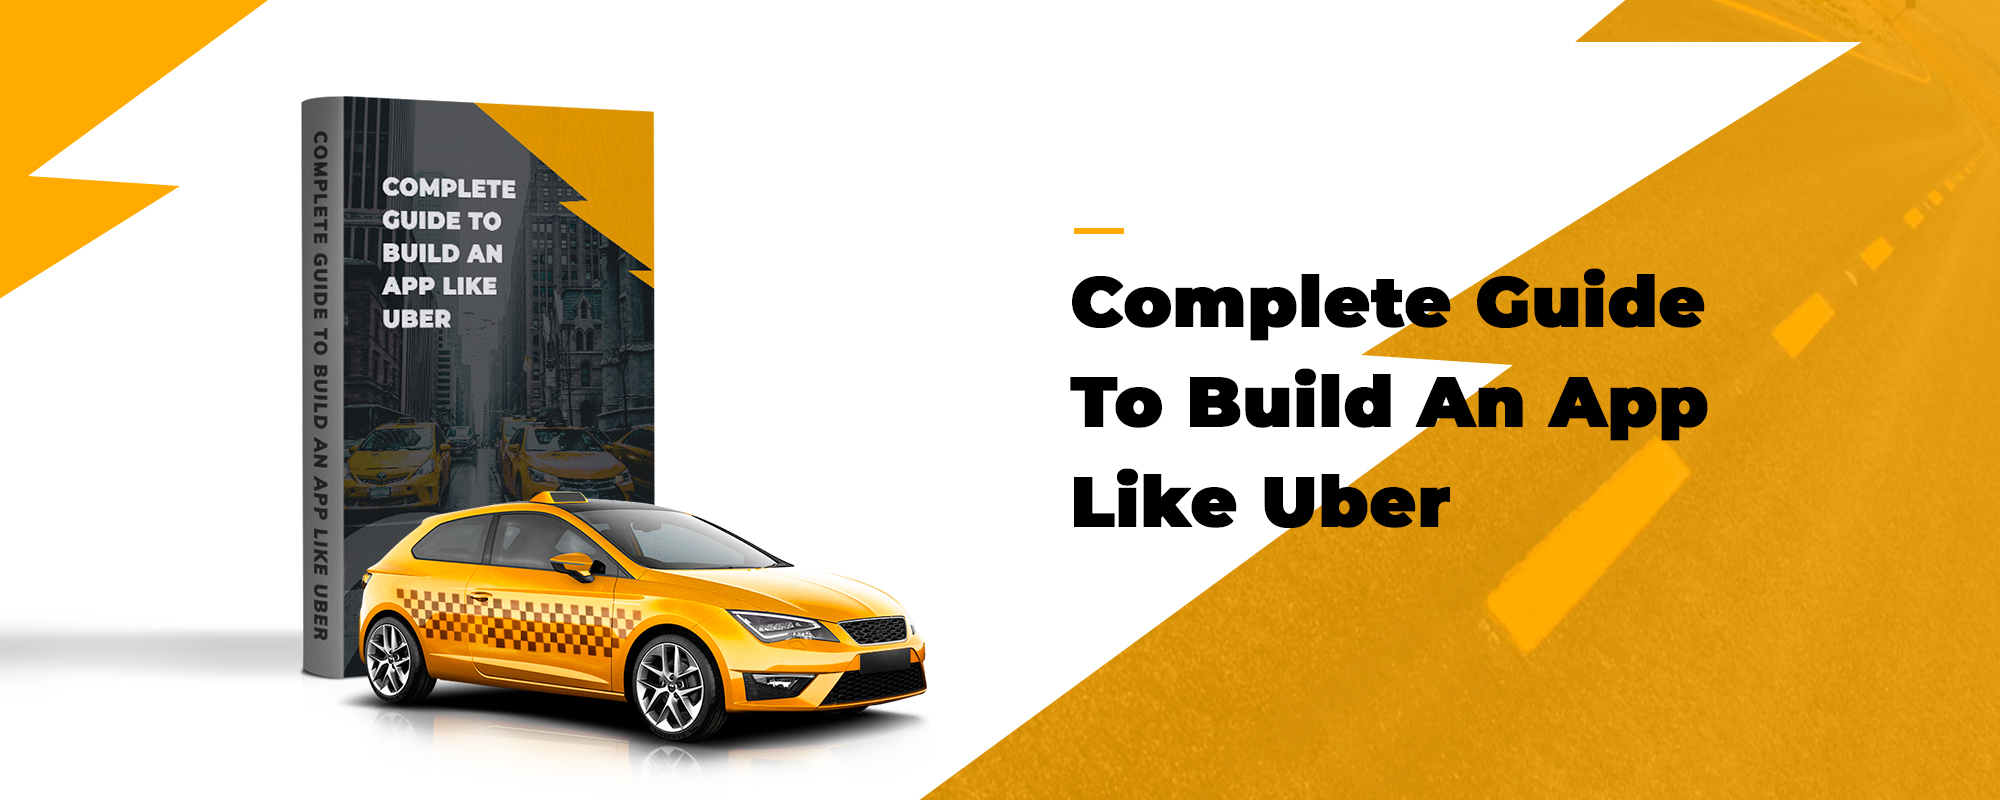 Complete Guide To Build An App Like Uber